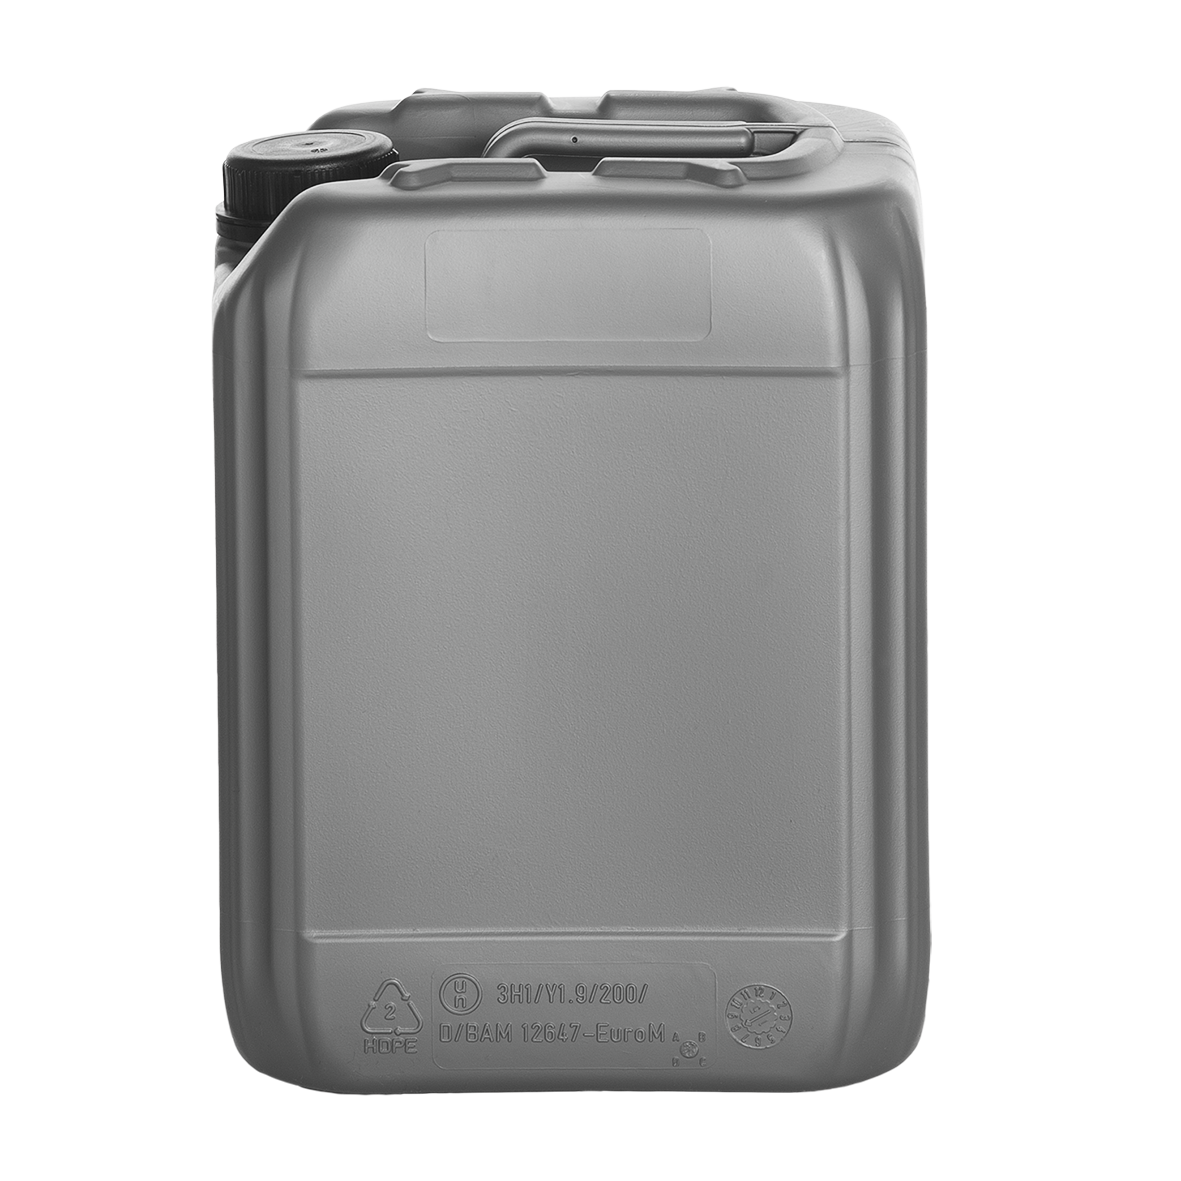 uploads jerrycan jerrycan PNG43709 3